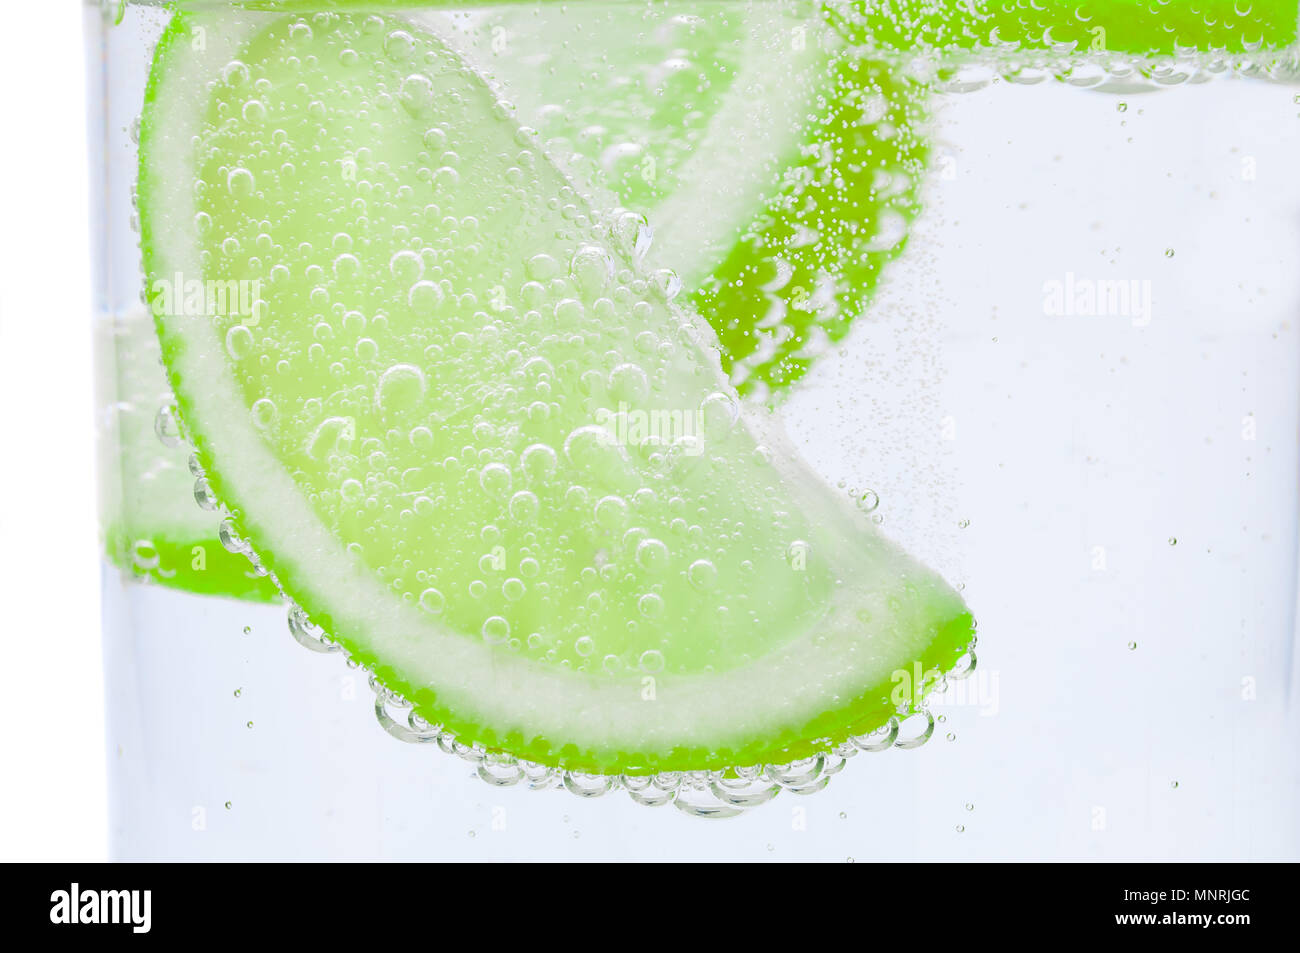 Pieces of fresh juicy lime sink into clear water. - Stock Image